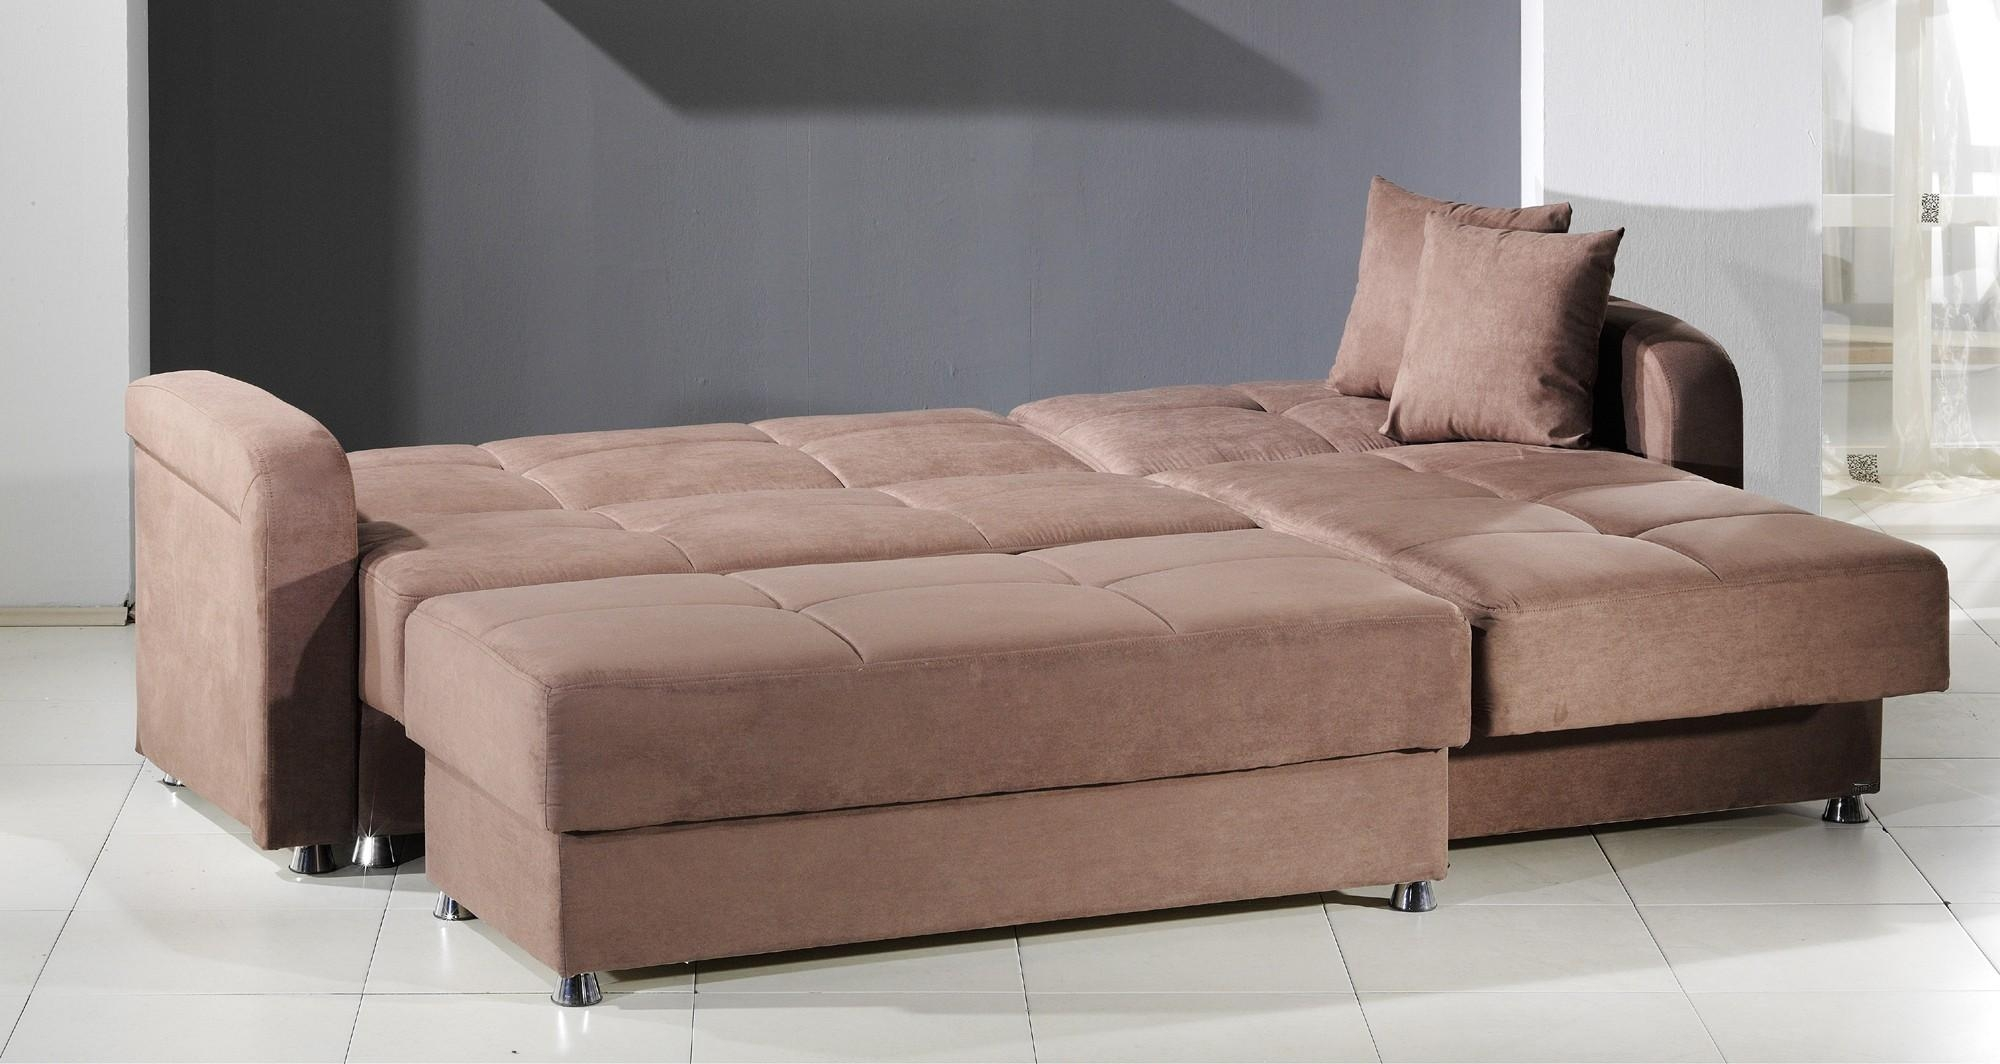 Wonderful Sleeper Sectional Sofa With Chaise Latest Cheap With Sleeper Sectional Sofas (Image 20 of 20)